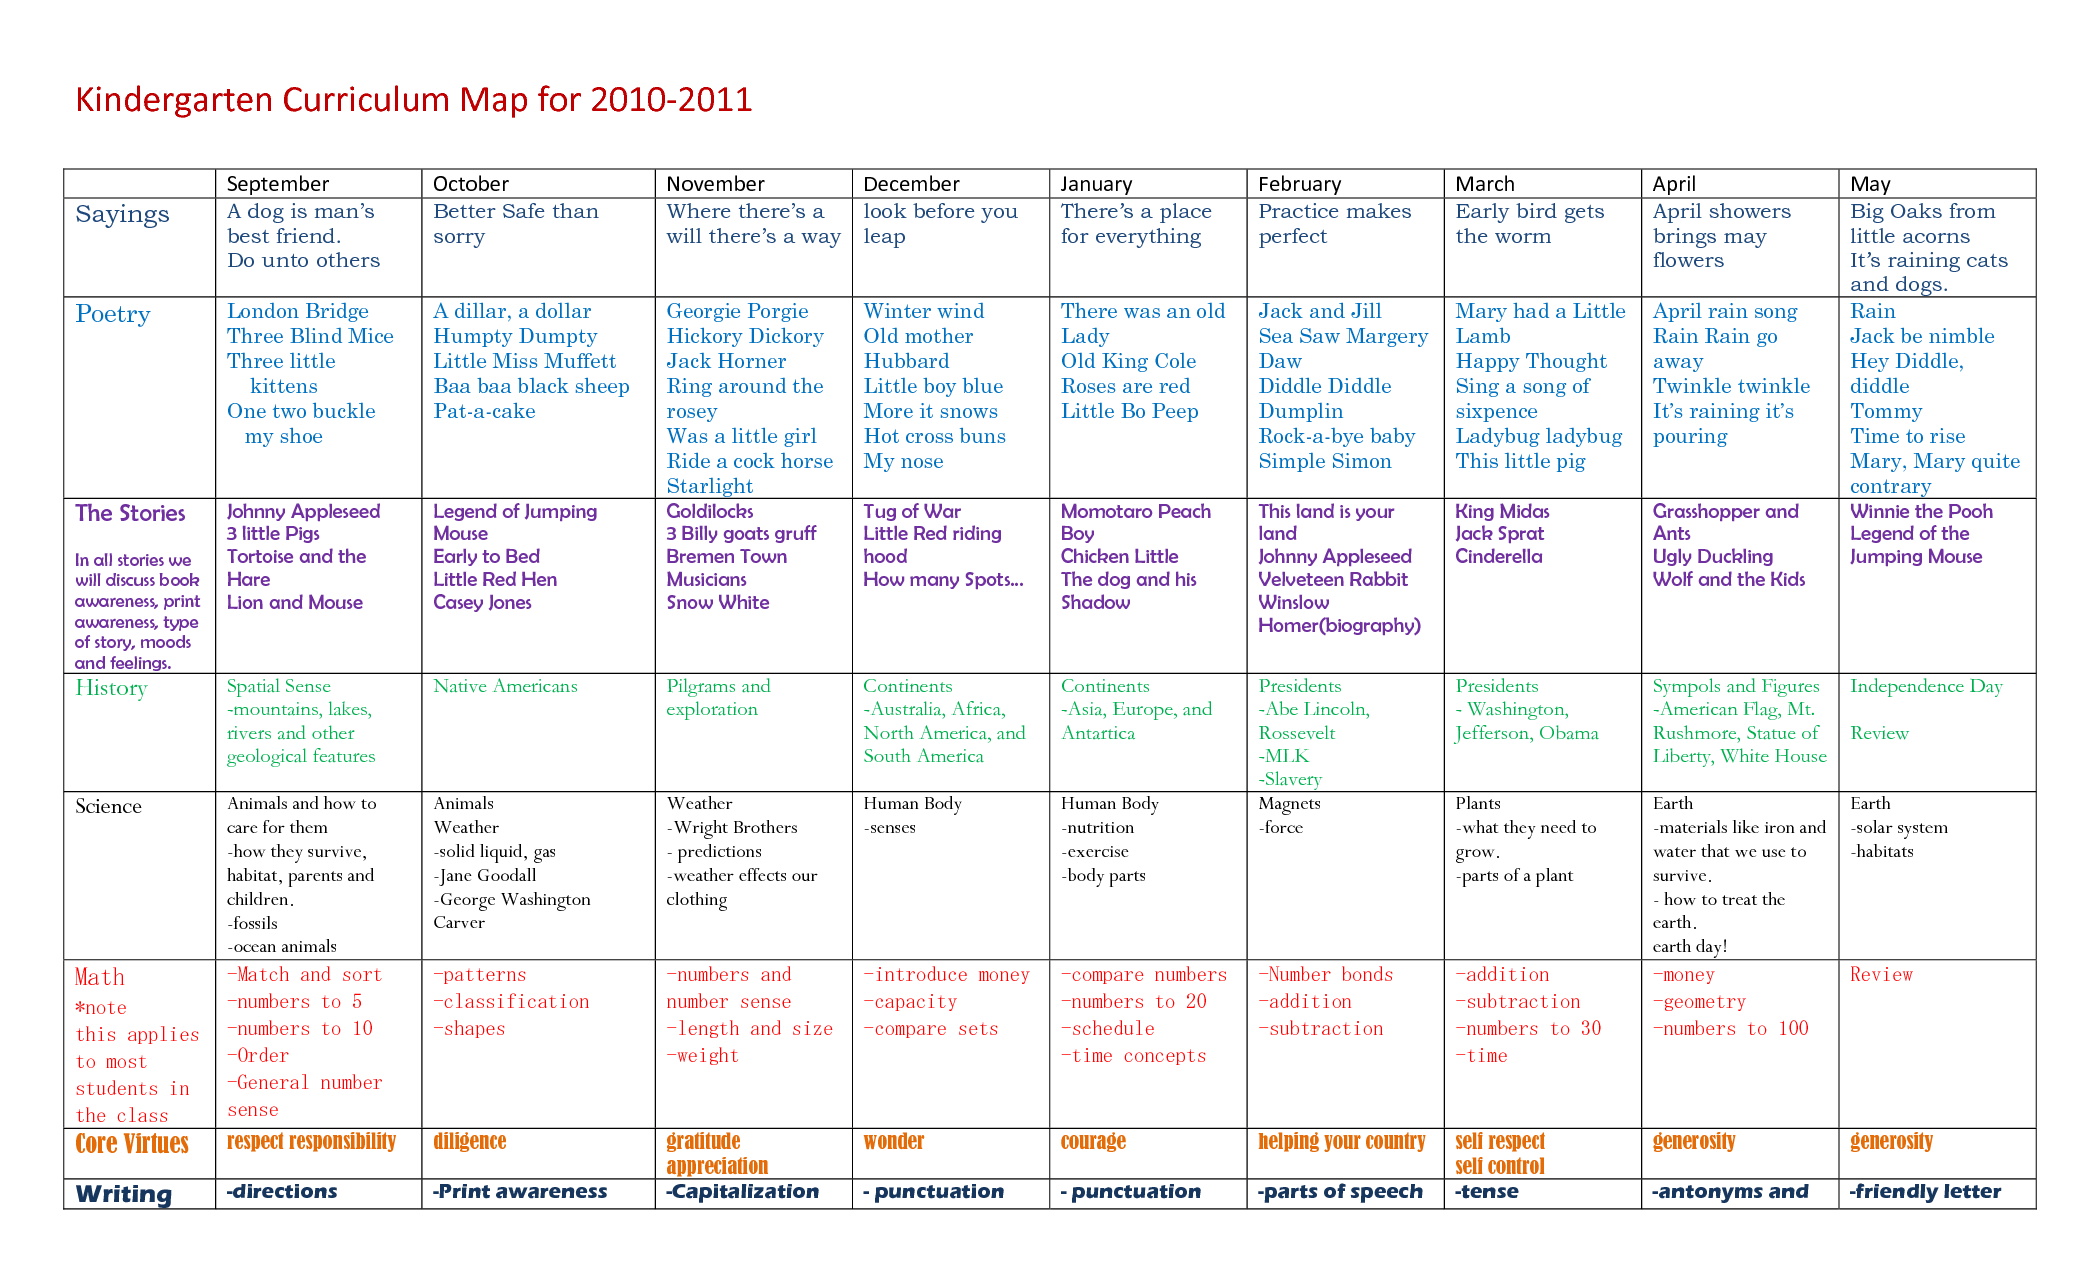 kindergarten curriculum map template kindergarten curriculum kindergarten curriculum map for